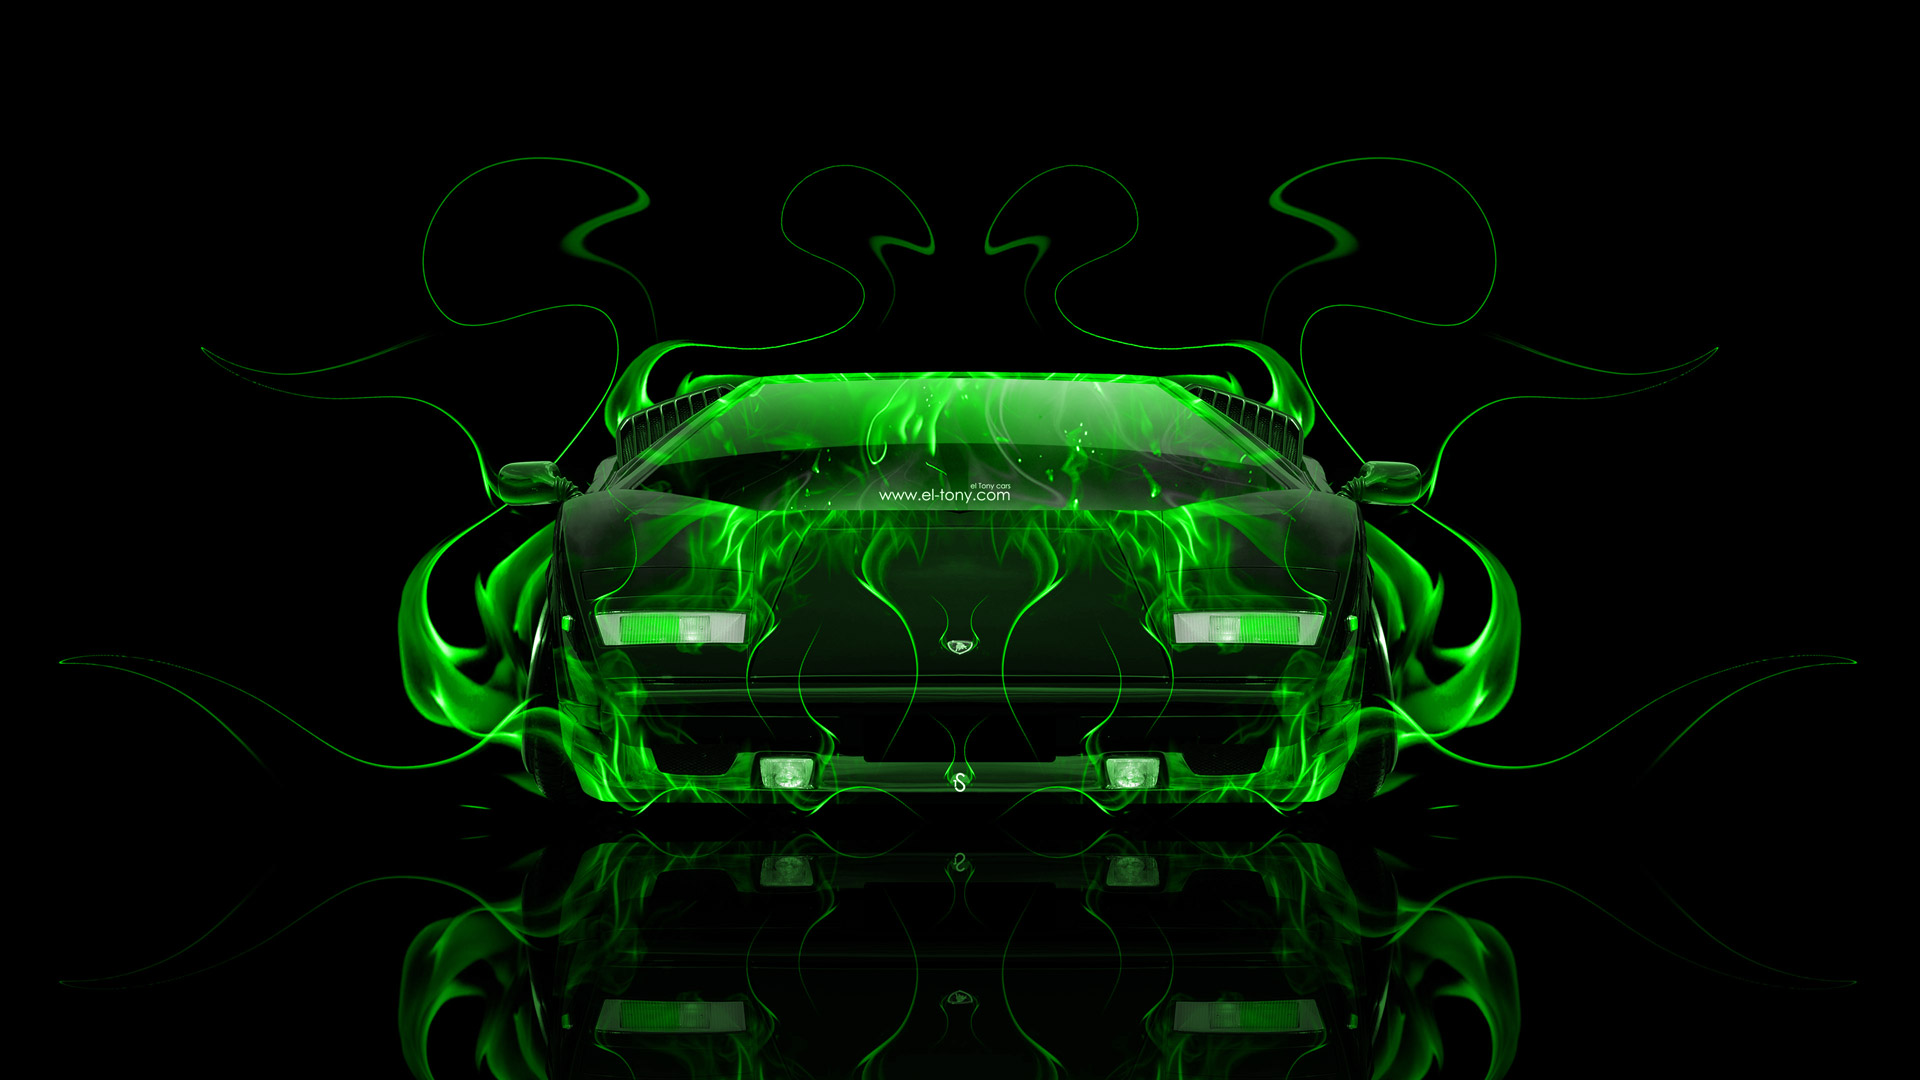 Lamborghini Countach Front Fire Abstract Car 2014 El Tony